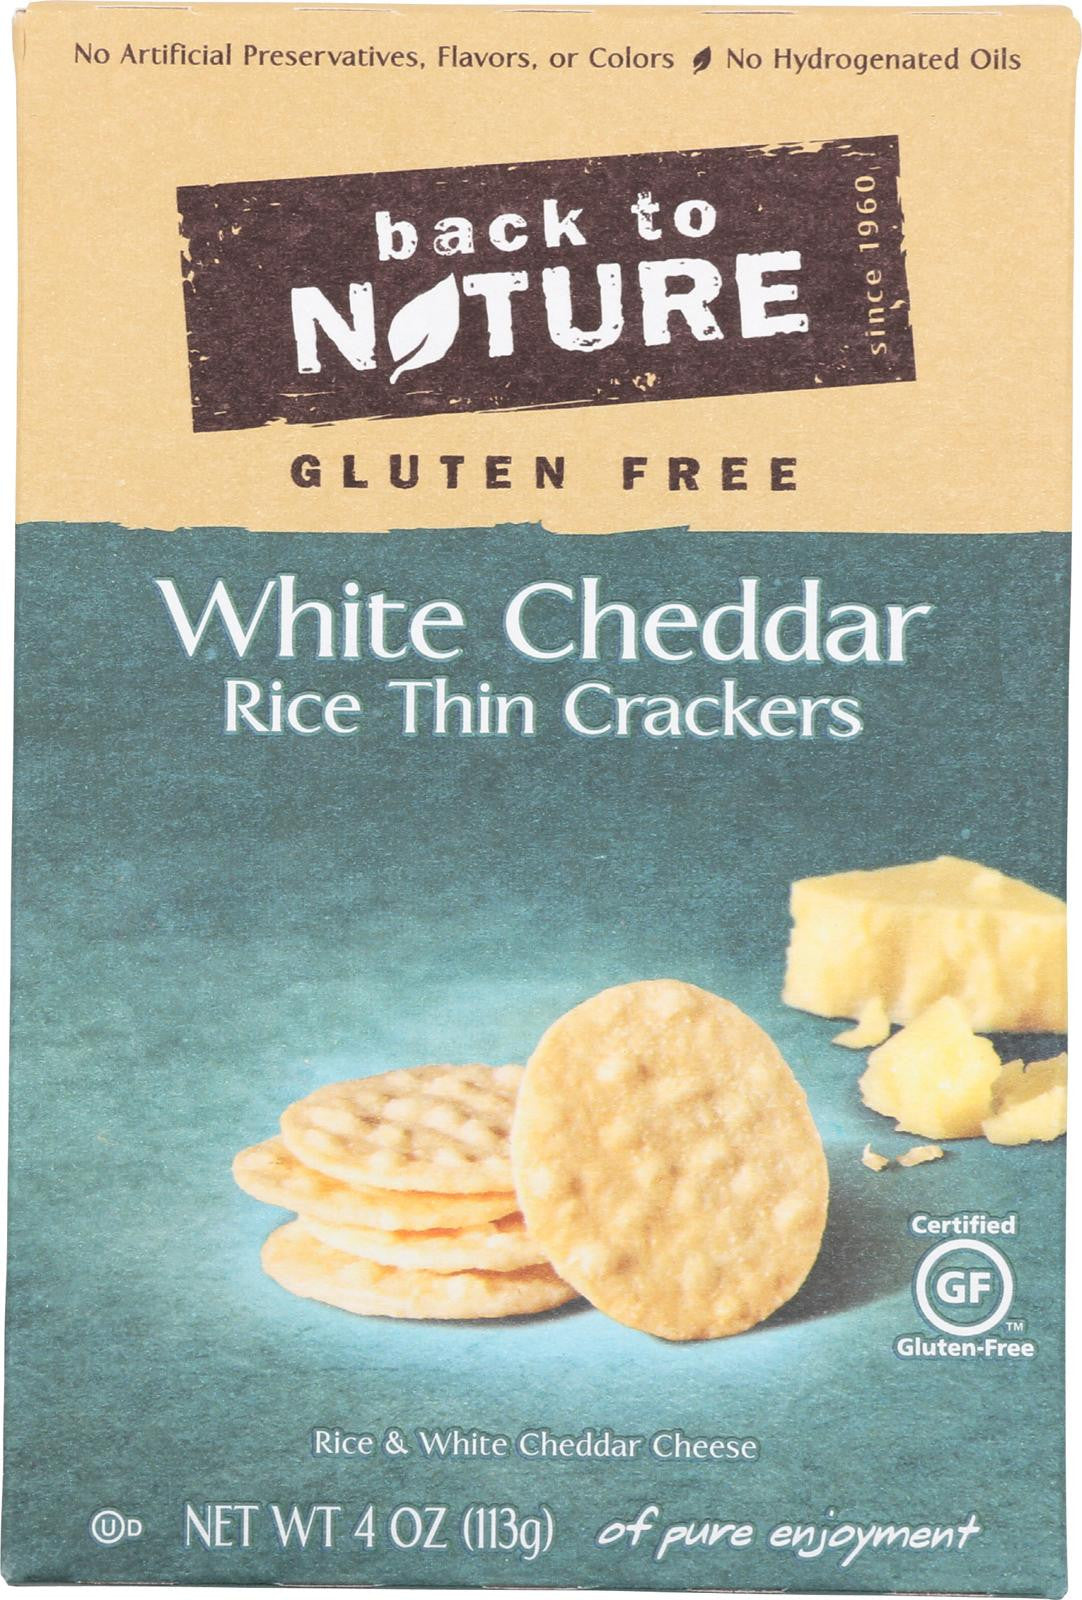 Back To Nature White Cheddar Rice Thin Crackers (Gluten Free)